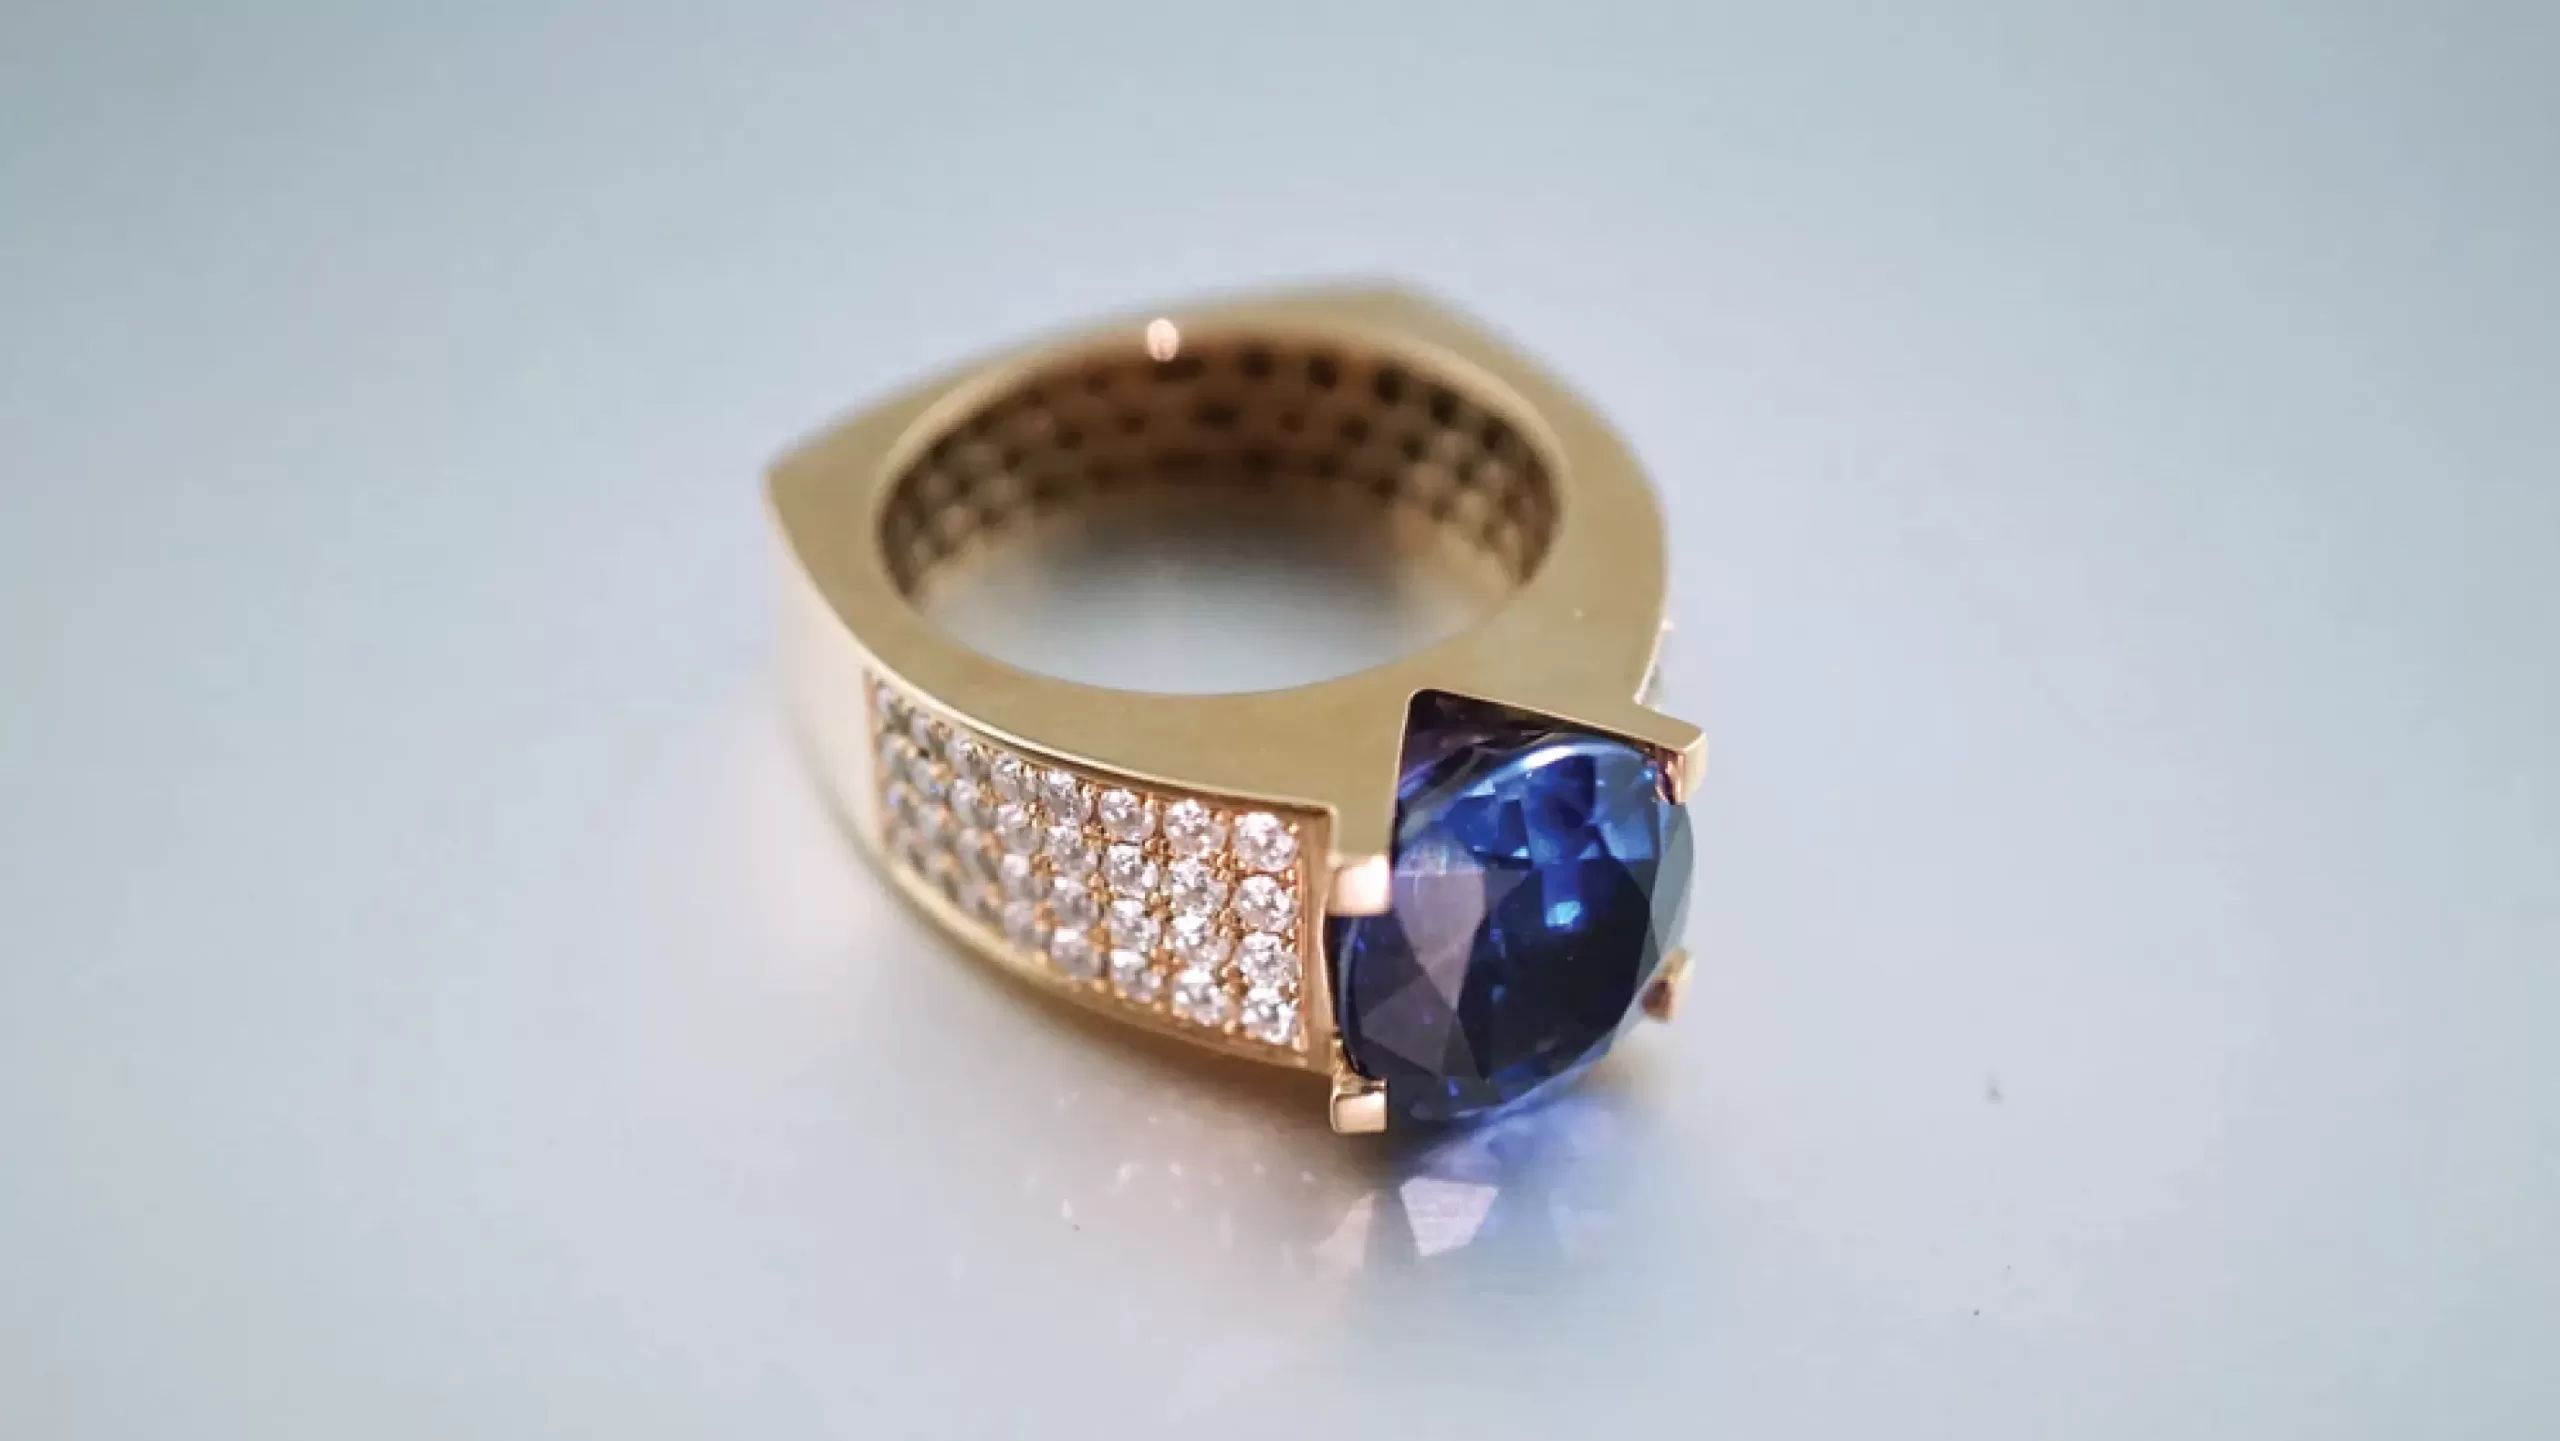 FAMOUS-JEWELRY-AND-BODY-ORNAMENTS-scaled